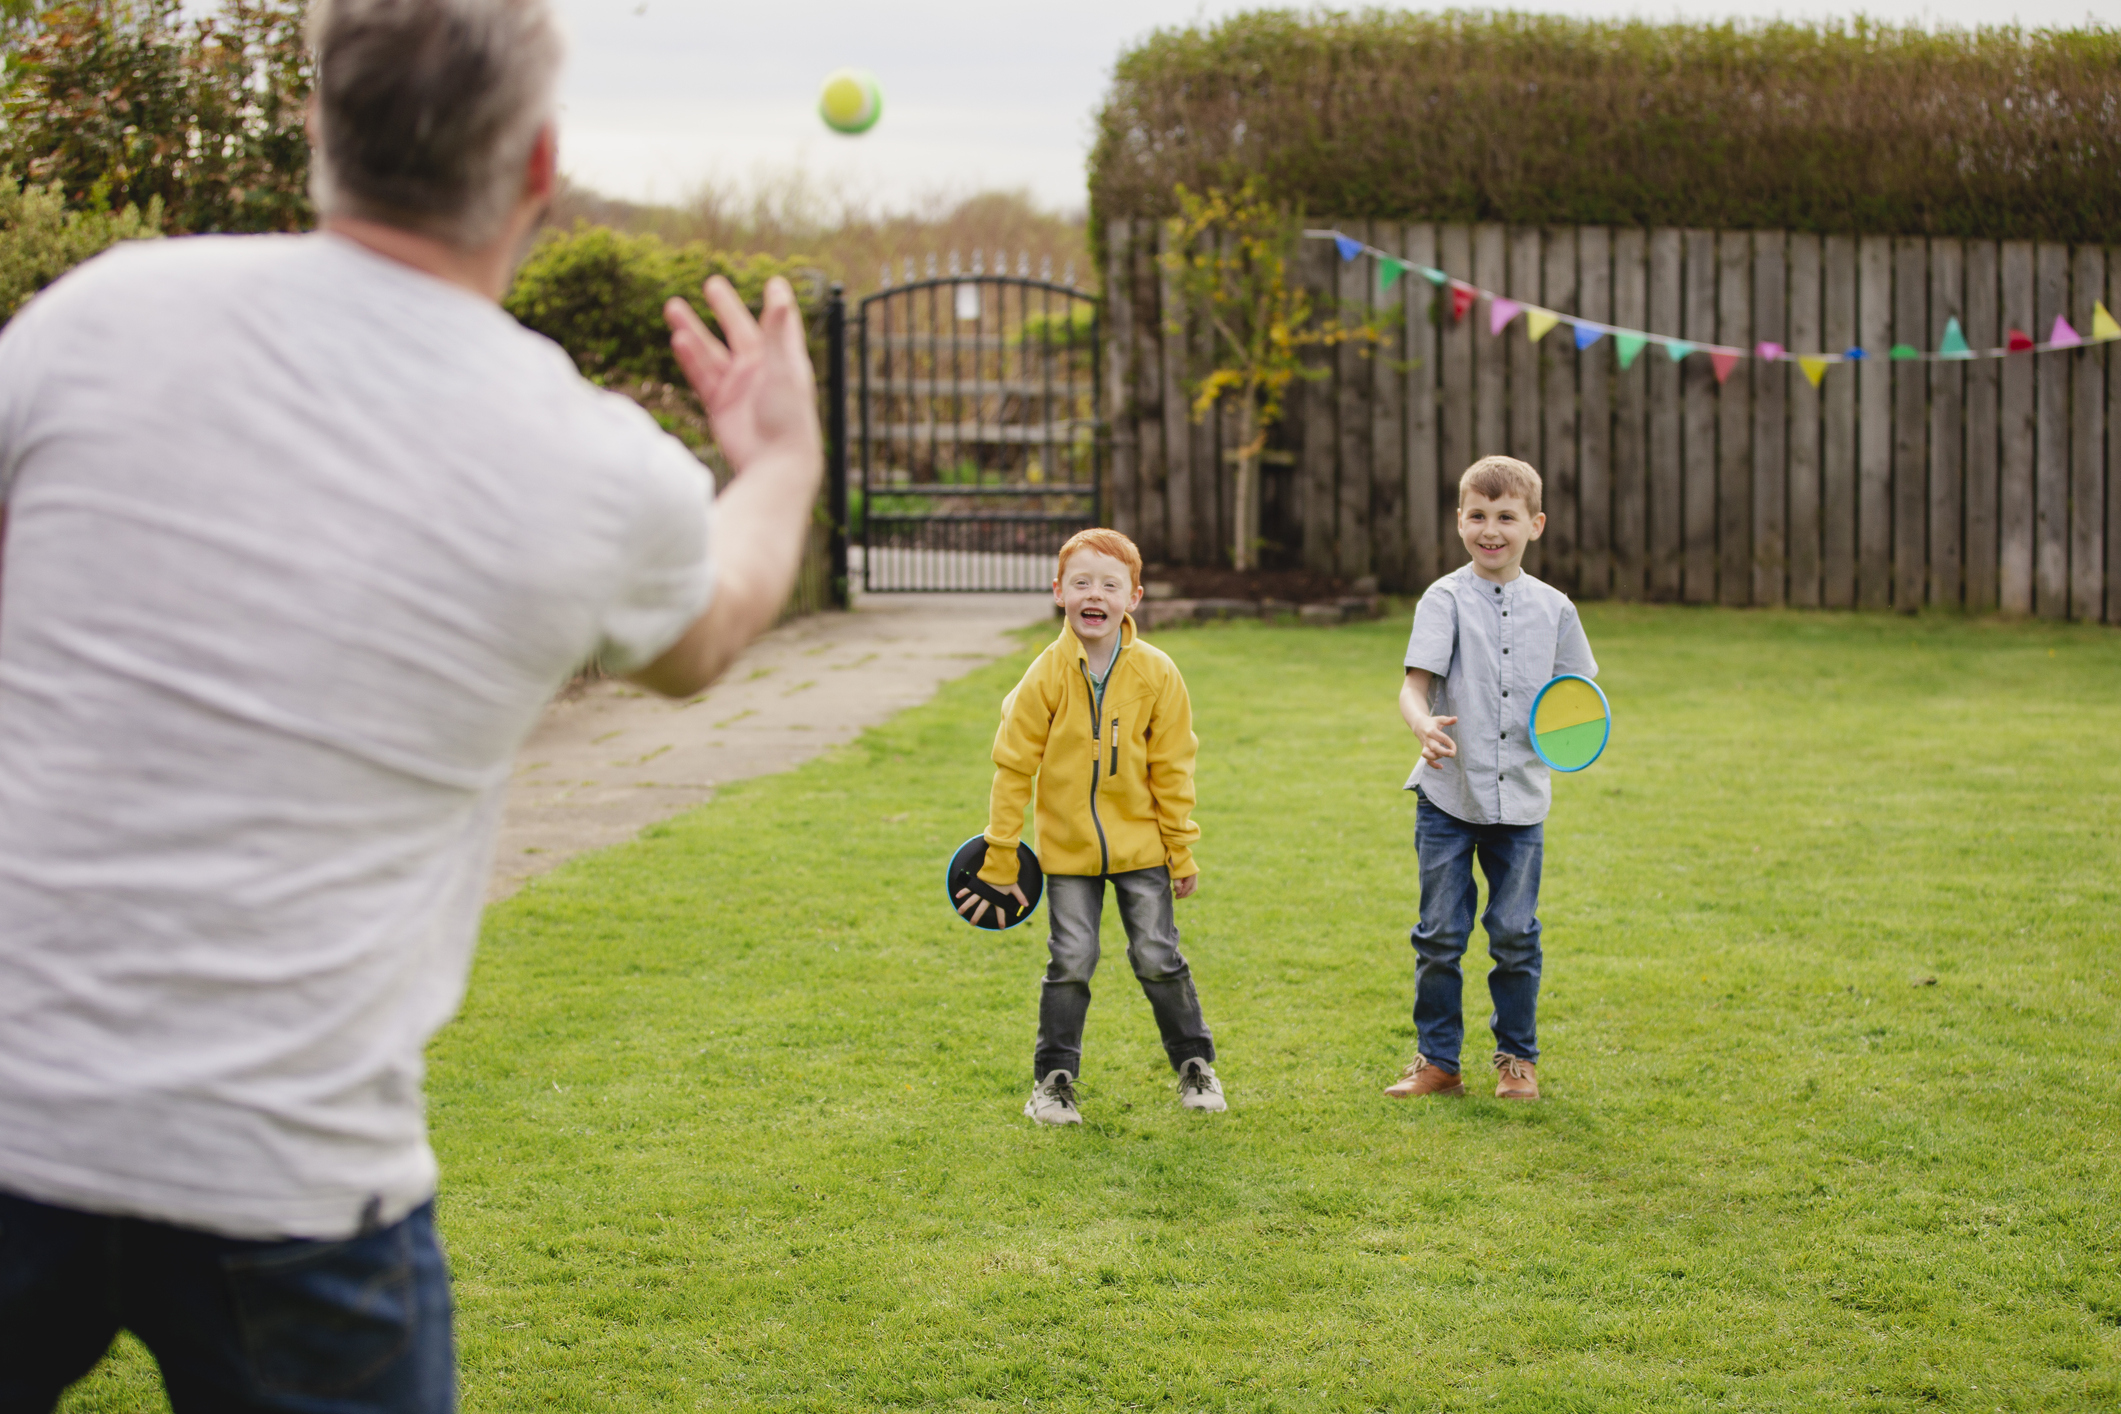 Rear view of a mid adult father throwing a tennis ball to his son and his friend. They are having fun and playing a game.